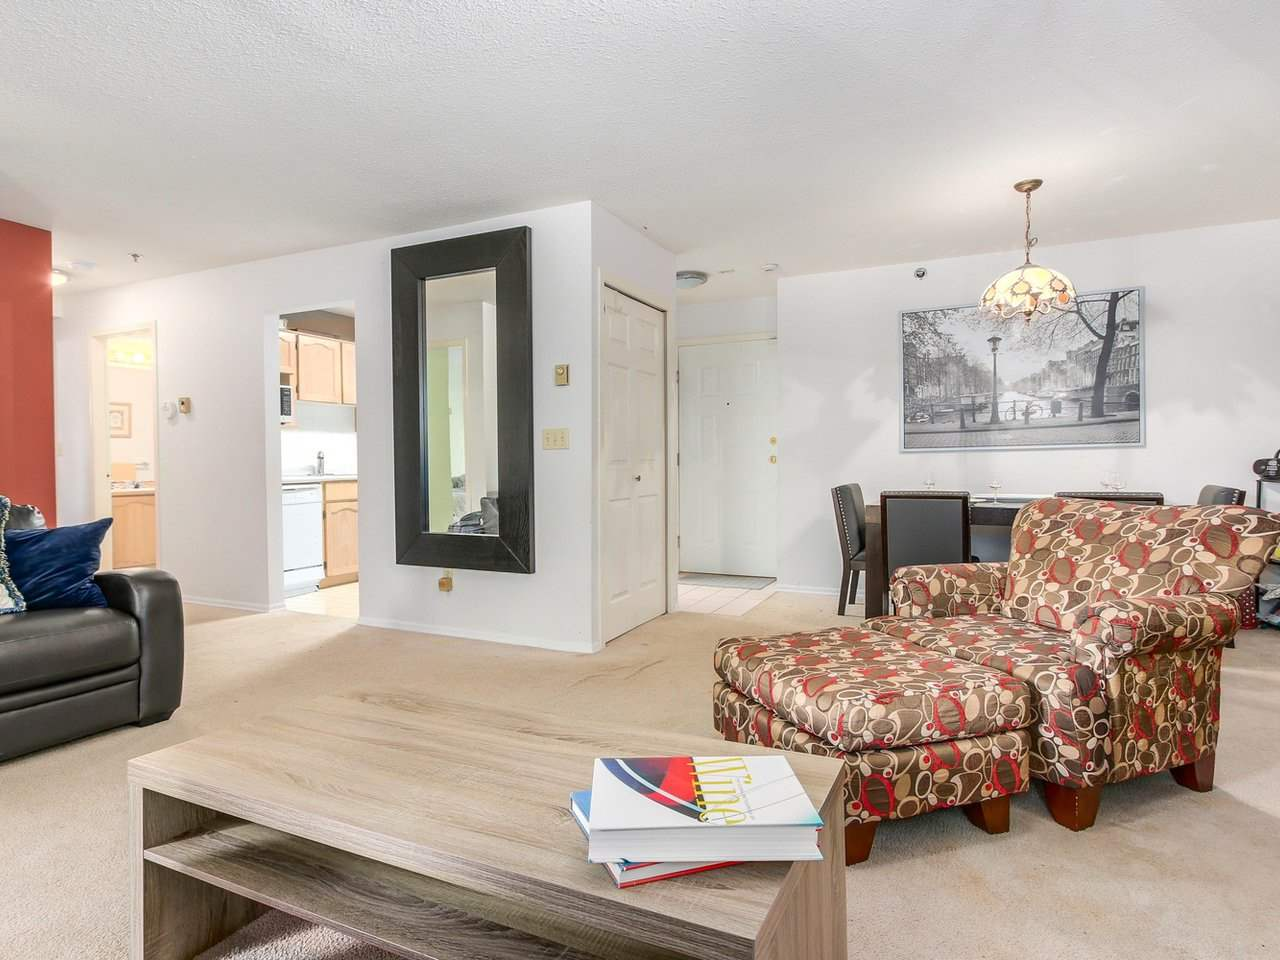 Photo 6: 105 1175 HEFFLEY Crescent in Coquitlam: North Coquitlam Condo for sale : MLS(r) # R2185533